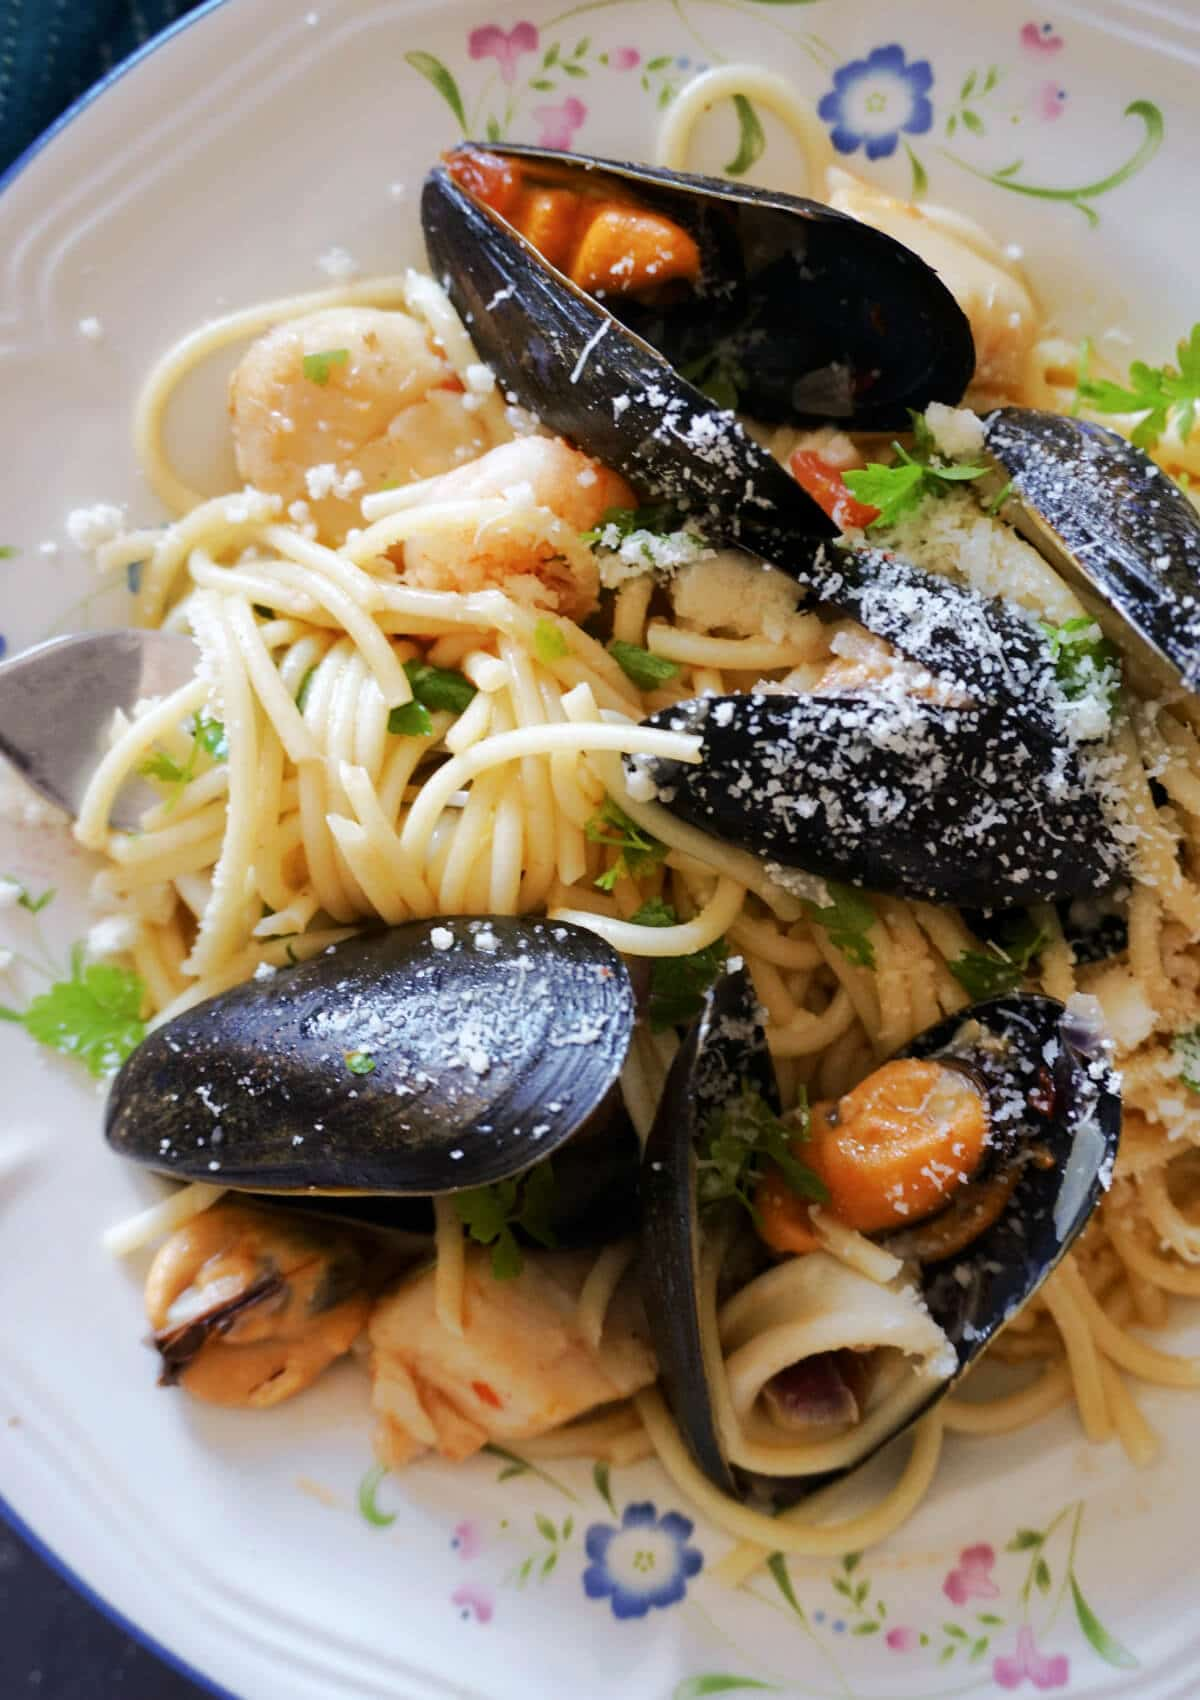 Close-up shot of a plate with spaghetti and seafood